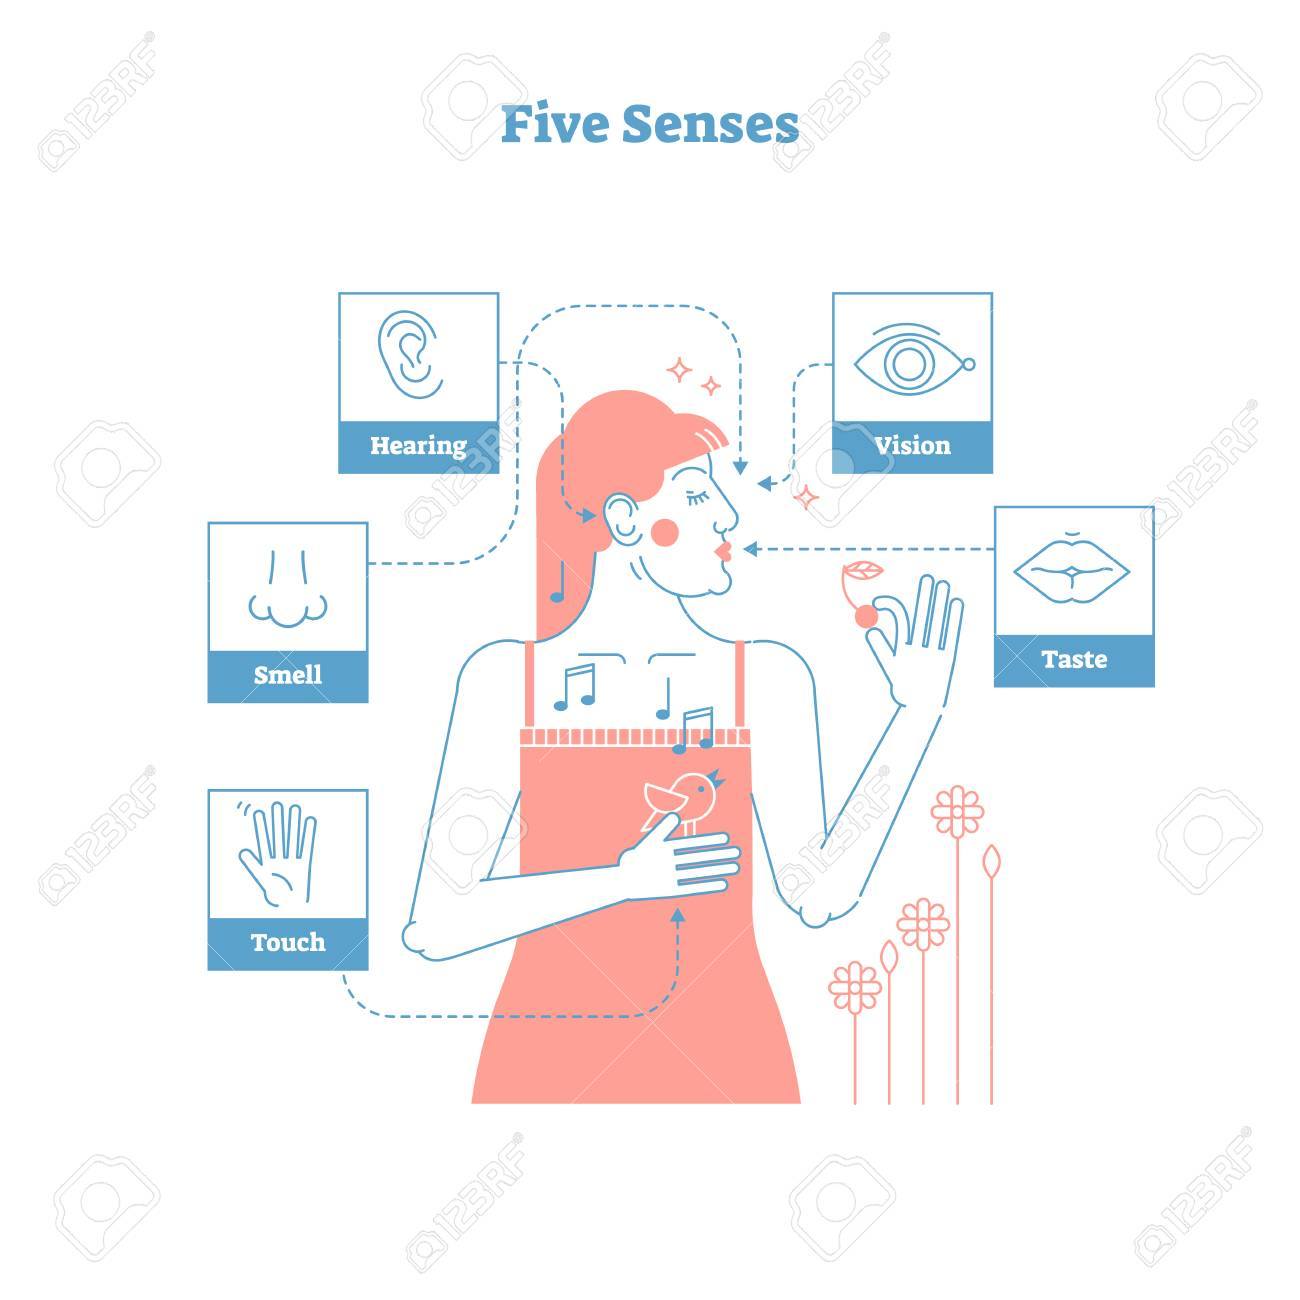 Five Human Senses Sensual Experience Artistic Outline Style Graphic